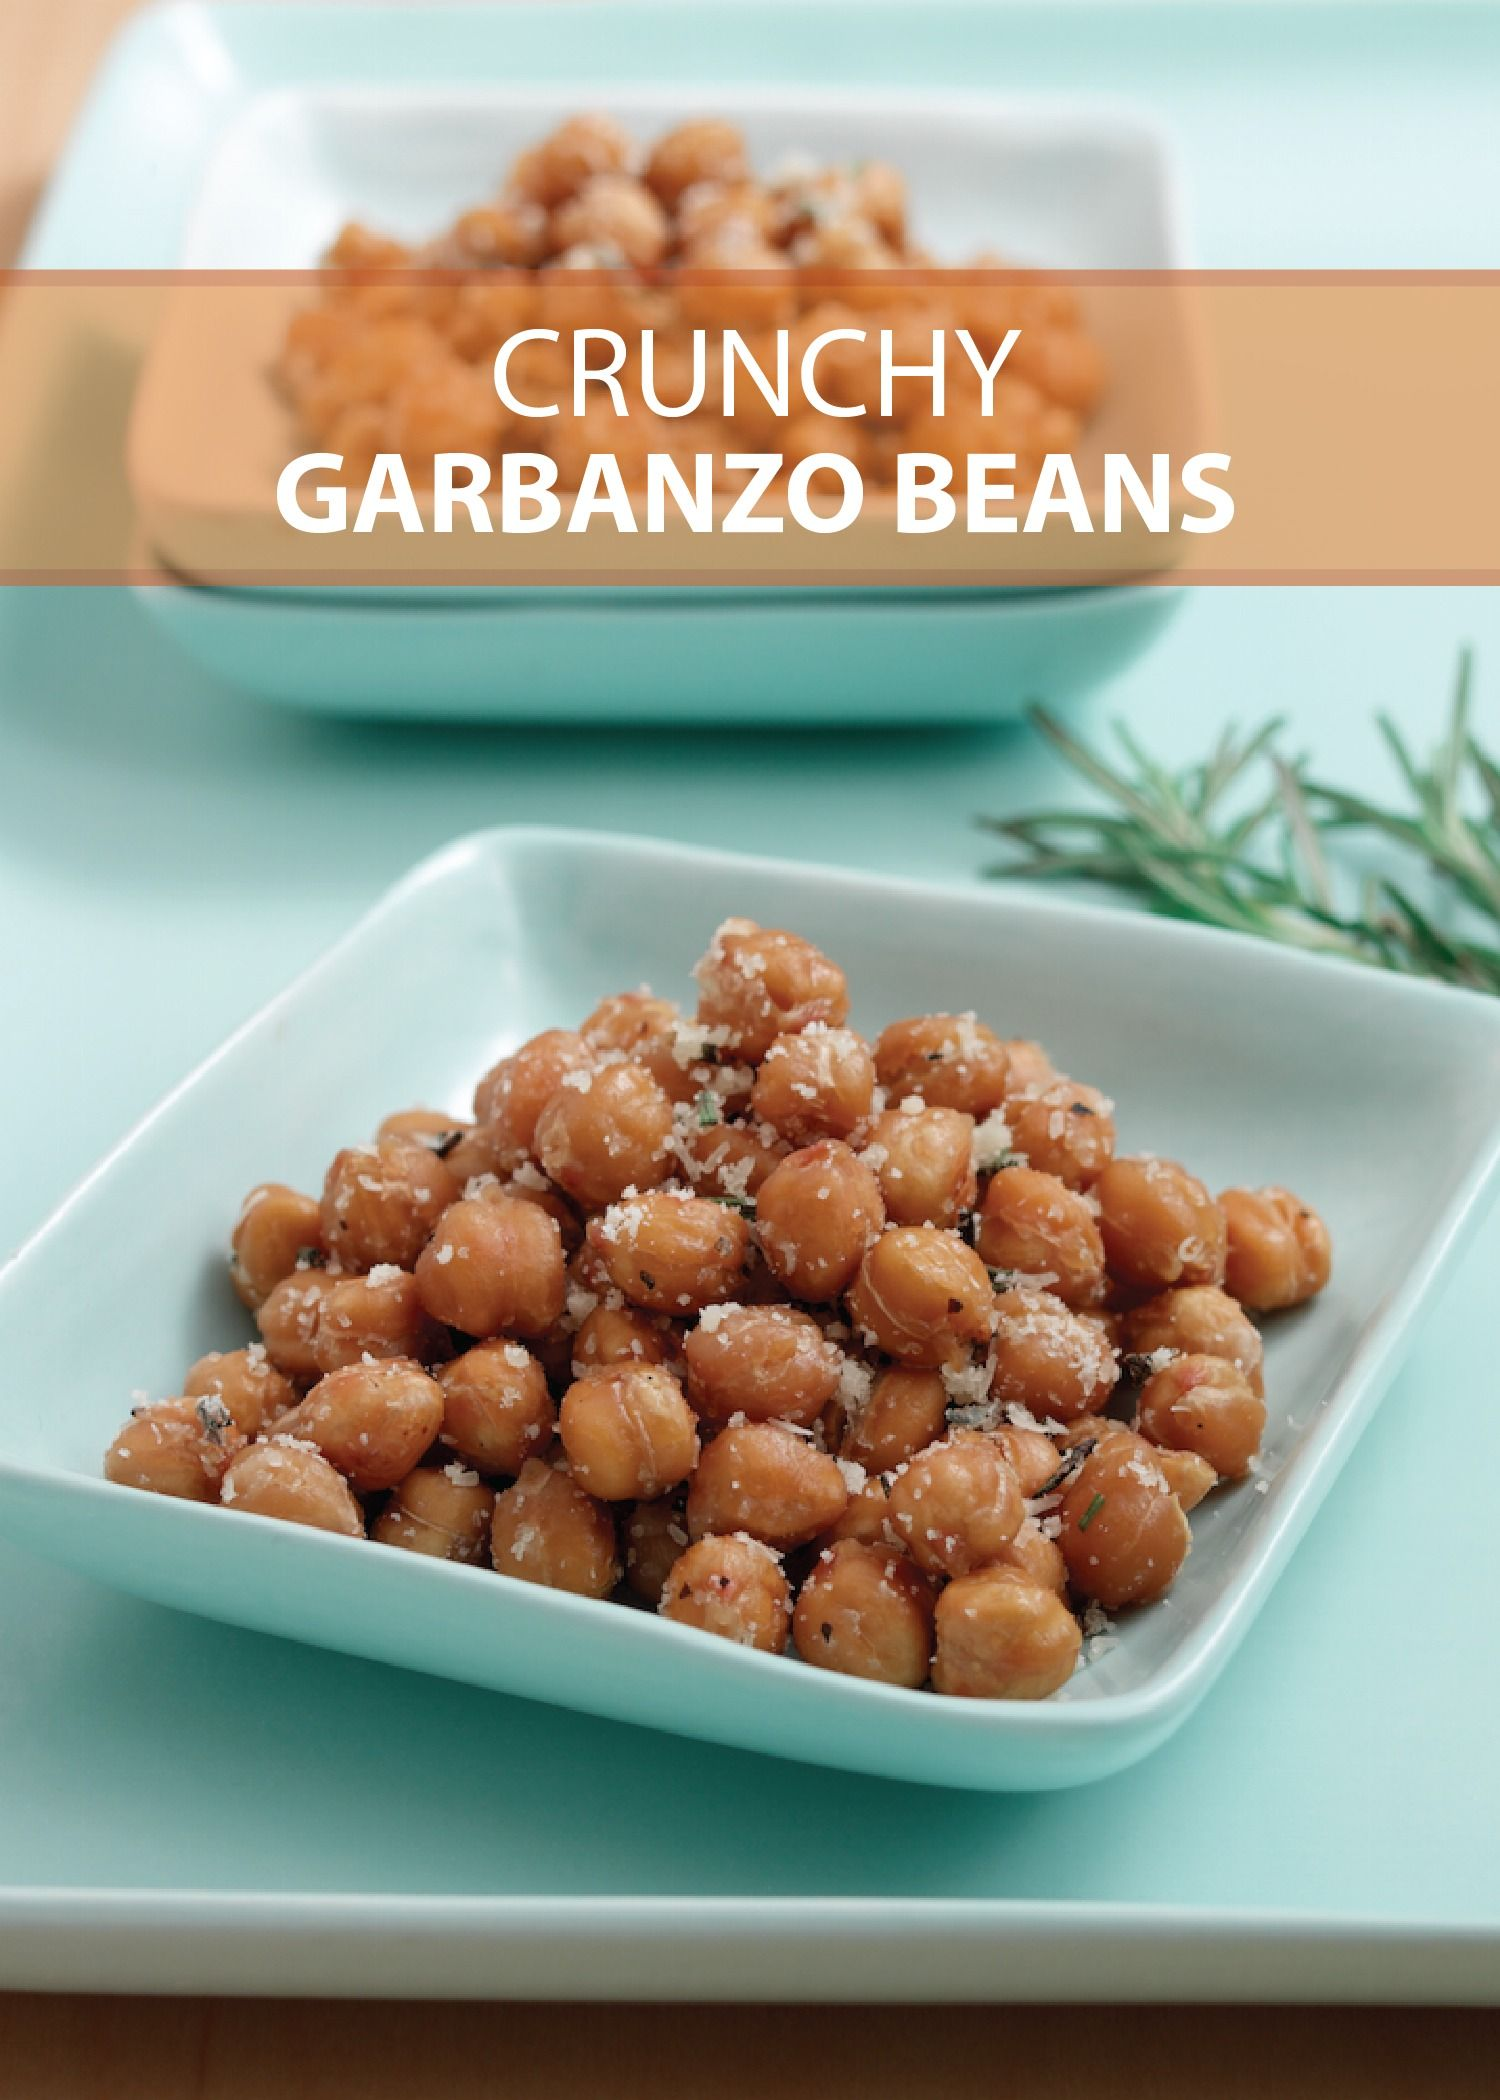 These Crunchy Garbanzo Beans are so addicting! Try this crunchy, cheesy snack that is great for parties or as an after-school snack!